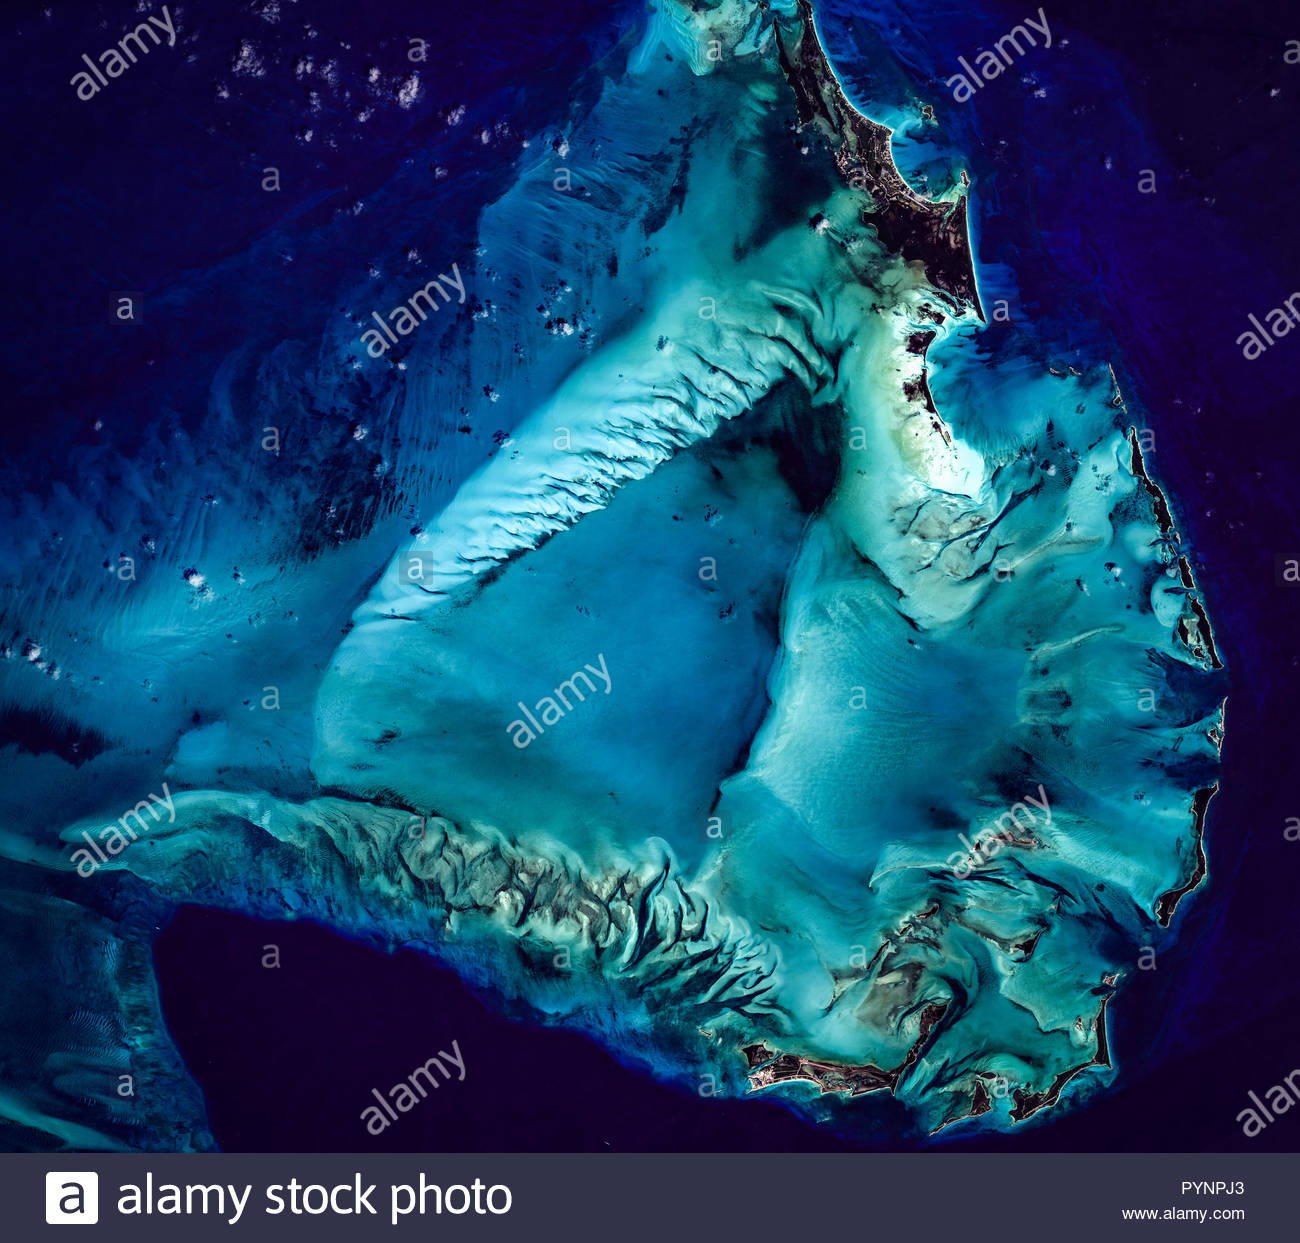 High resolution satellite image of Bahamas from above, Carribbean islands, aerial view, contains modified Copernicus Sentinel data [2018] - Stock Image